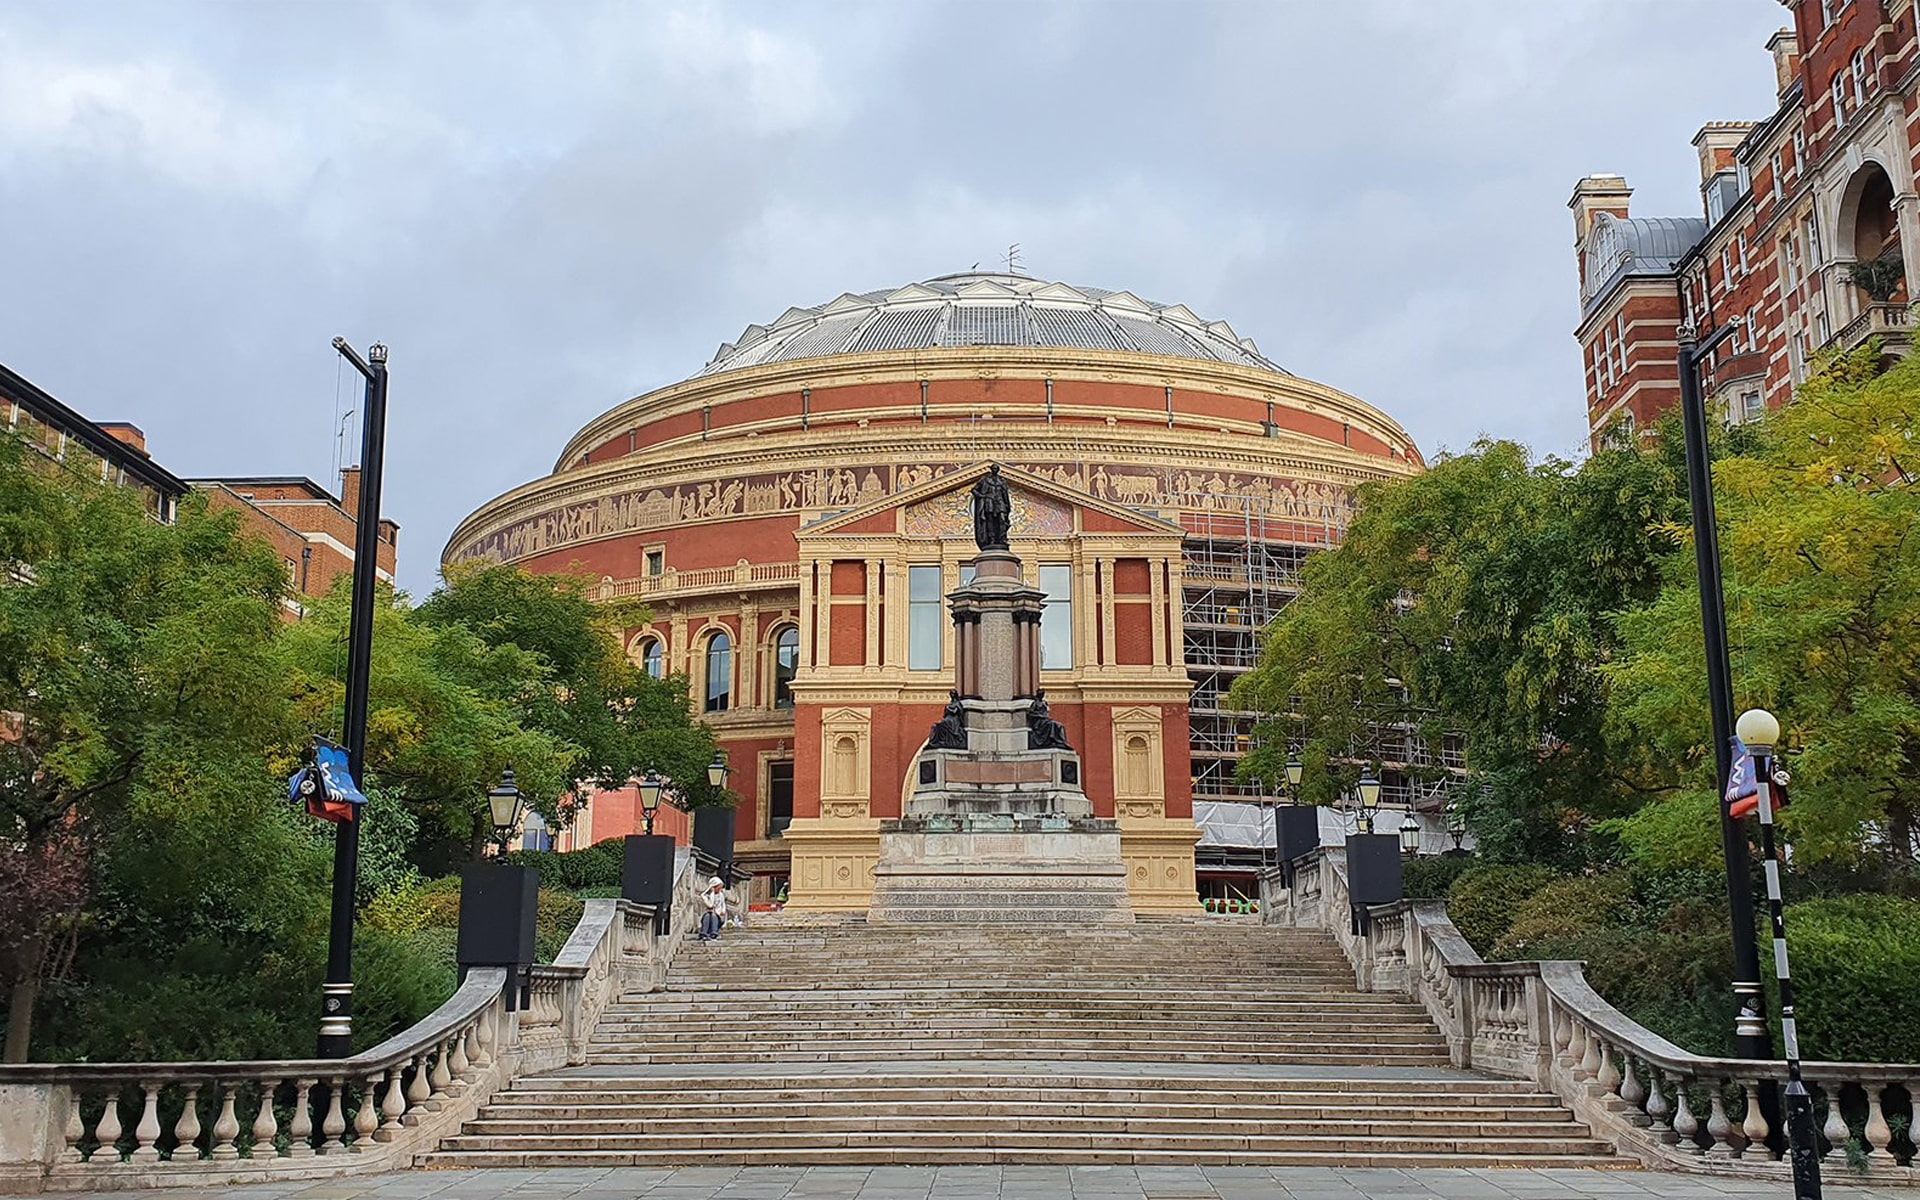 Royal Albert Hall, Masterplan Projects & Resident Engineer Role